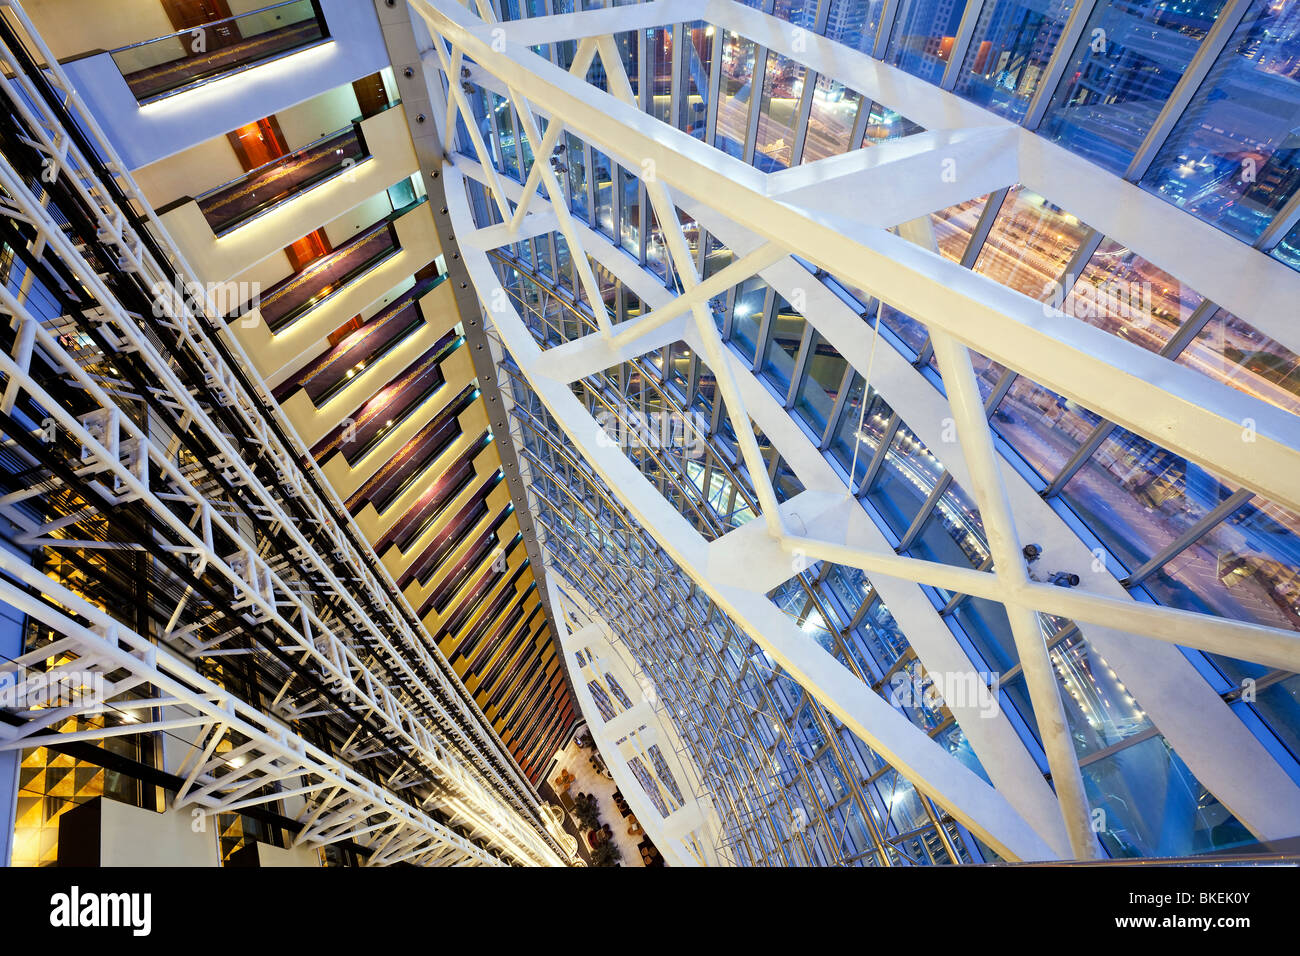 Modern architecture inside a luxury office and hotel building, Dubai, United Arab Emirates - Stock Image